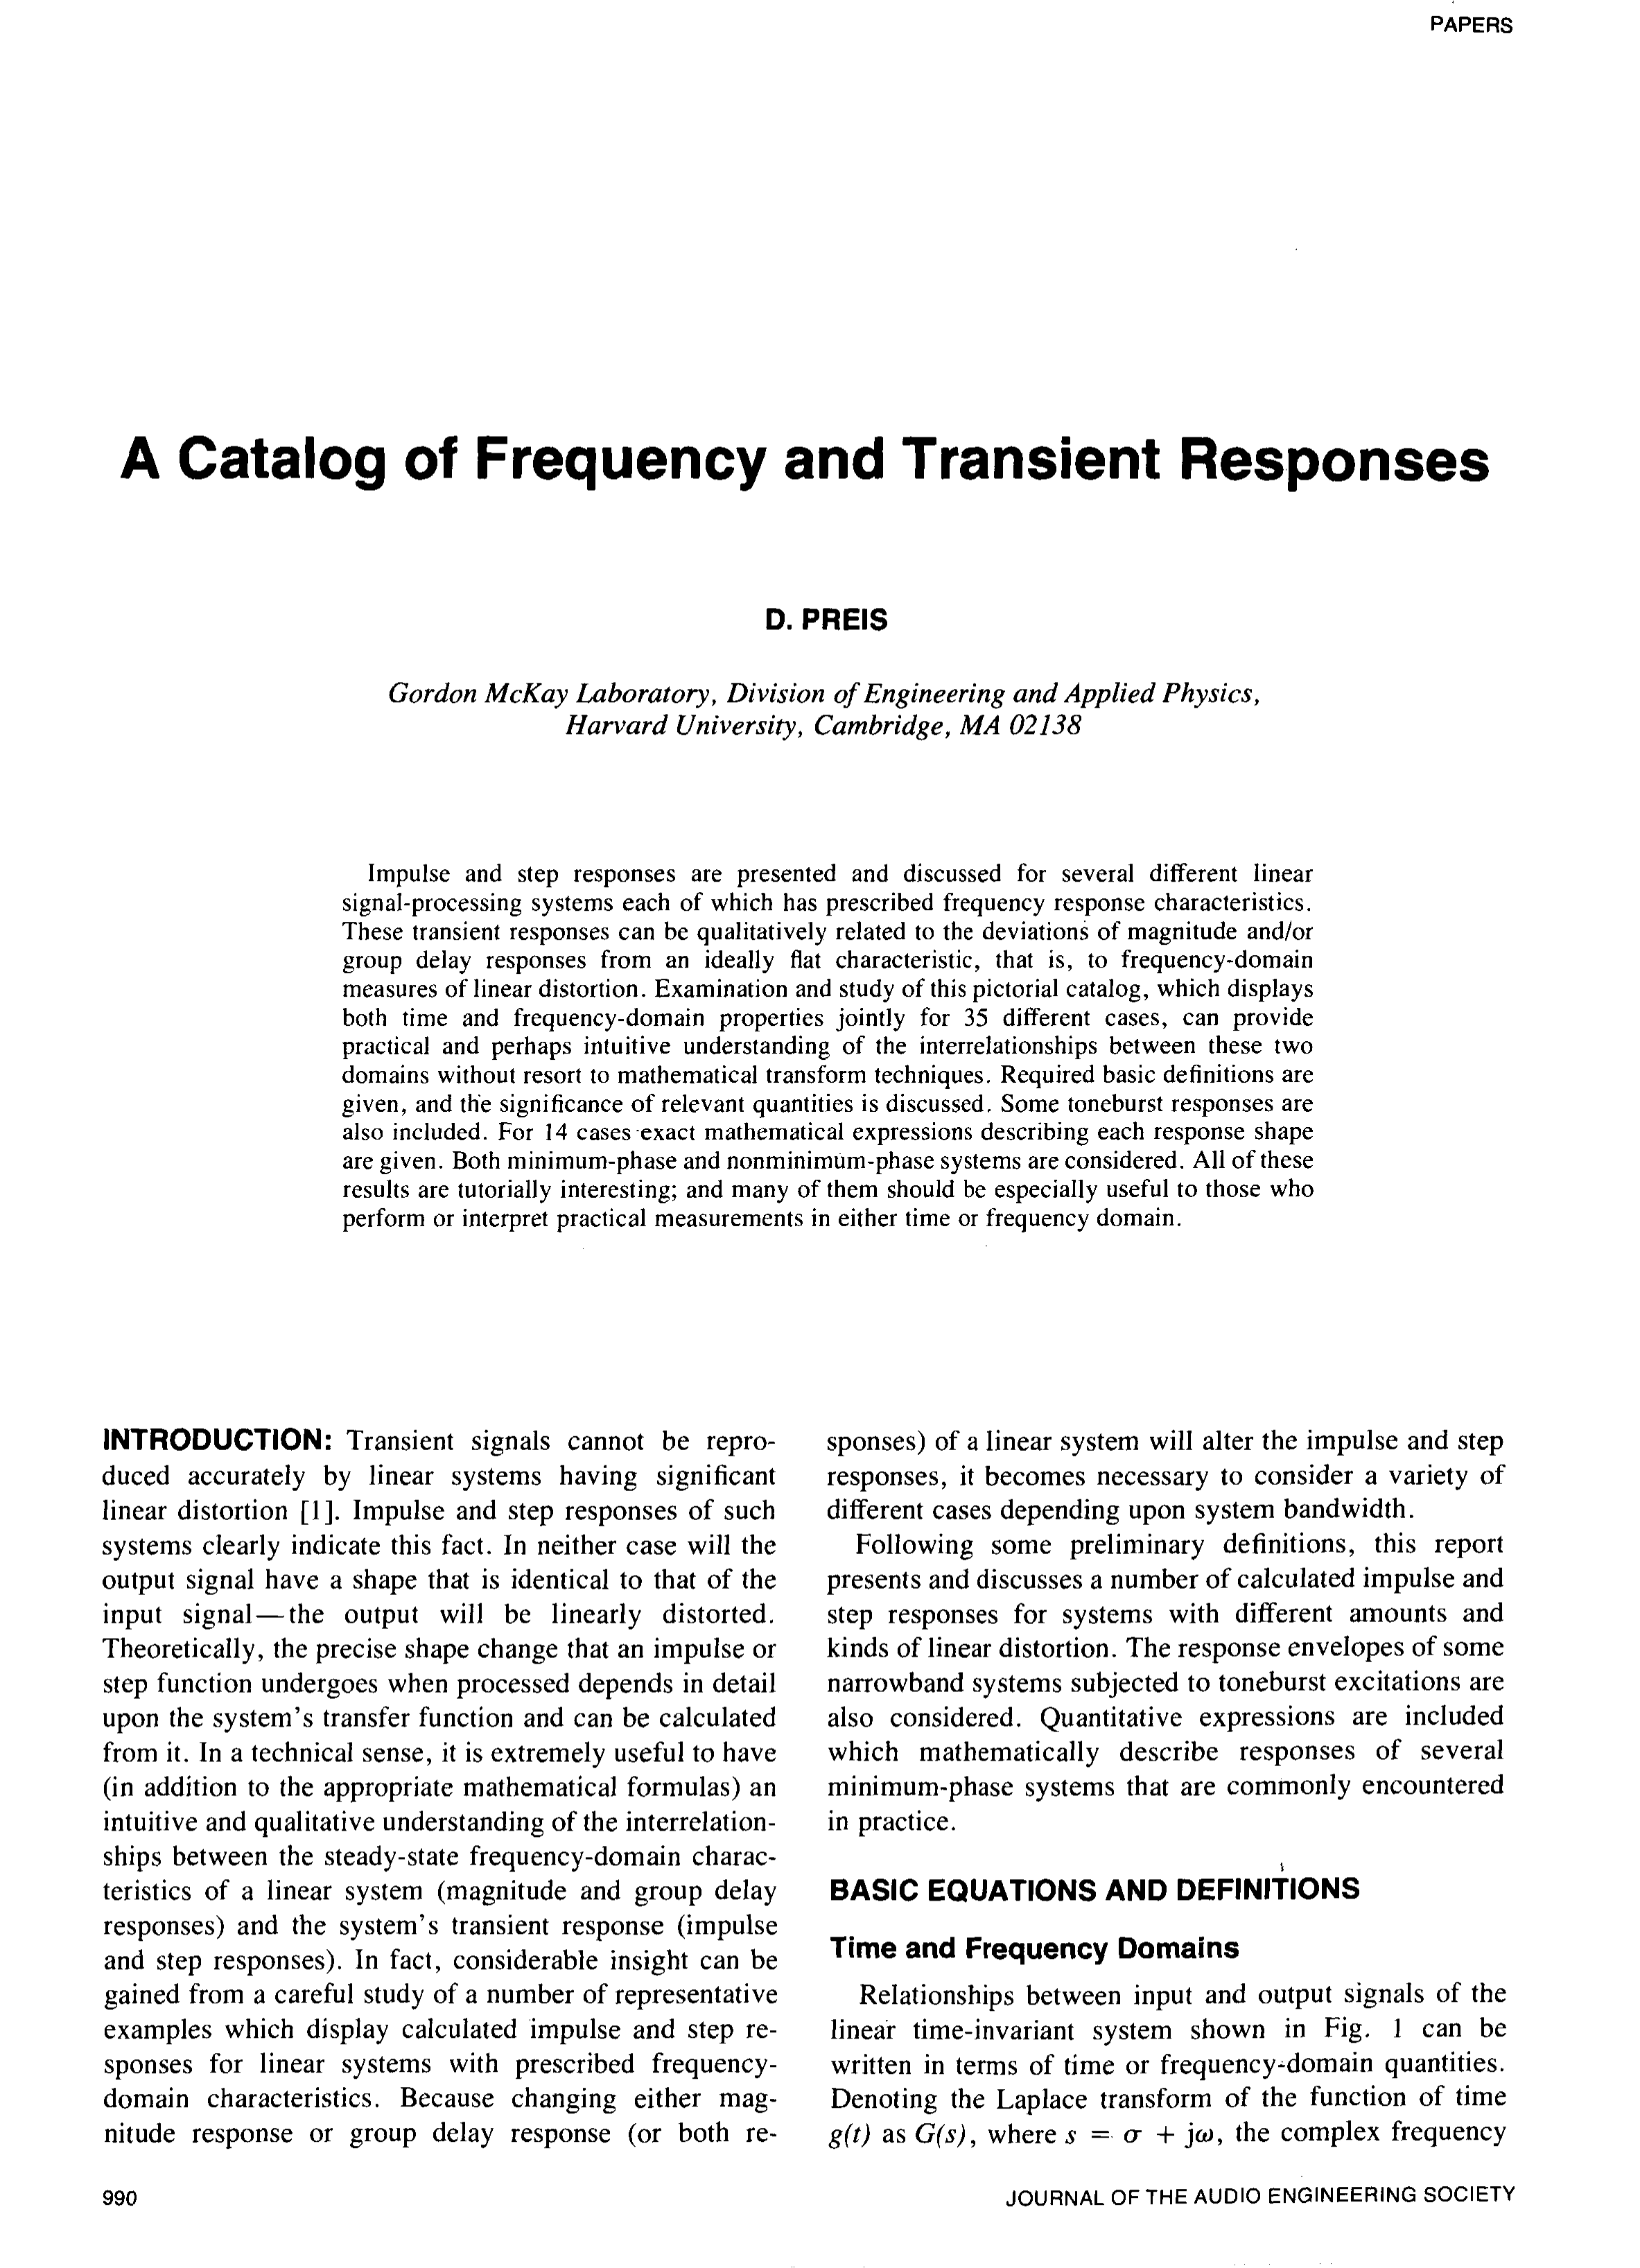 aes e-library » a catalog of frequency and transient responses